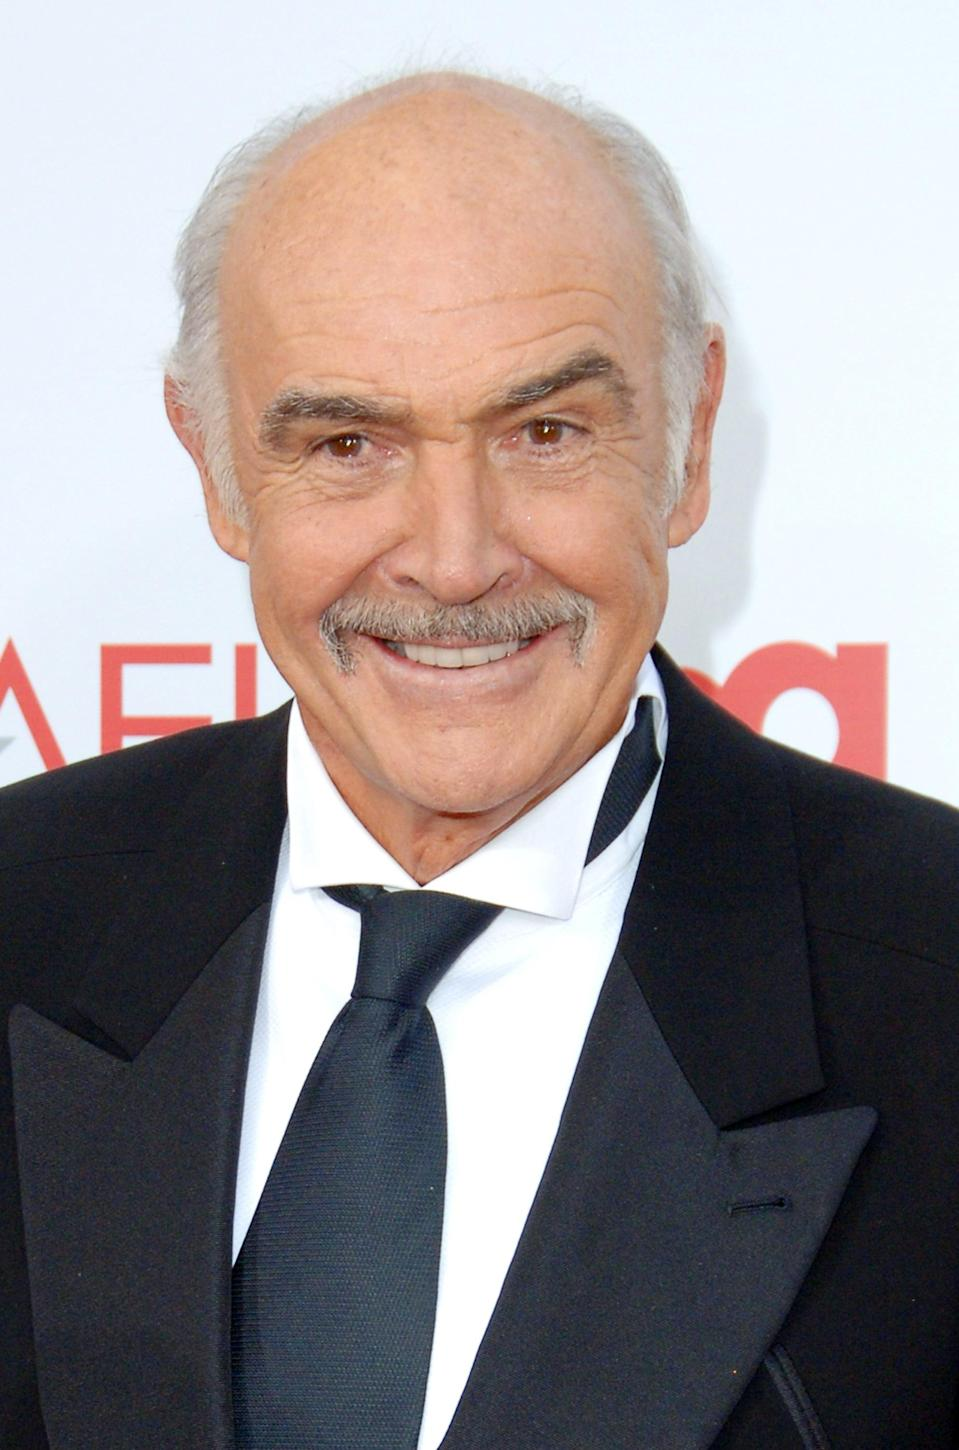 "<p>The actor, best known for playing James Bond, <a href=""https://variety.com/2020/film/actors/sean-connery-dies-oscar-winner-and-james-bond-star-dead-at-90-1234820498/"" class=""link rapid-noclick-resp"" rel=""nofollow noopener"" target=""_blank"" data-ylk=""slk:died at age 90"">died at age 90</a> on Oct. 31. James Bond producers Michael G. Wilson and Barbara Broccoli <a href=""https://twitter.com/007/status/1322524367914414082?s=20"" class=""link rapid-noclick-resp"" rel=""nofollow noopener"" target=""_blank"" data-ylk=""slk:said in a statement"">said in a statement</a>: ""He was and shall always be remembered as the original James Bond whose indelible entrance into cinema history began when he announced those unforgettable words - 'The name's Bond... James Bond' - he revolutionised the world with his gritty and witty portrayal of the sexy and charismatic secret agent. He is undoubtedly largely responsible for the success of the film series and we shall be forever grateful to him.""</p>"